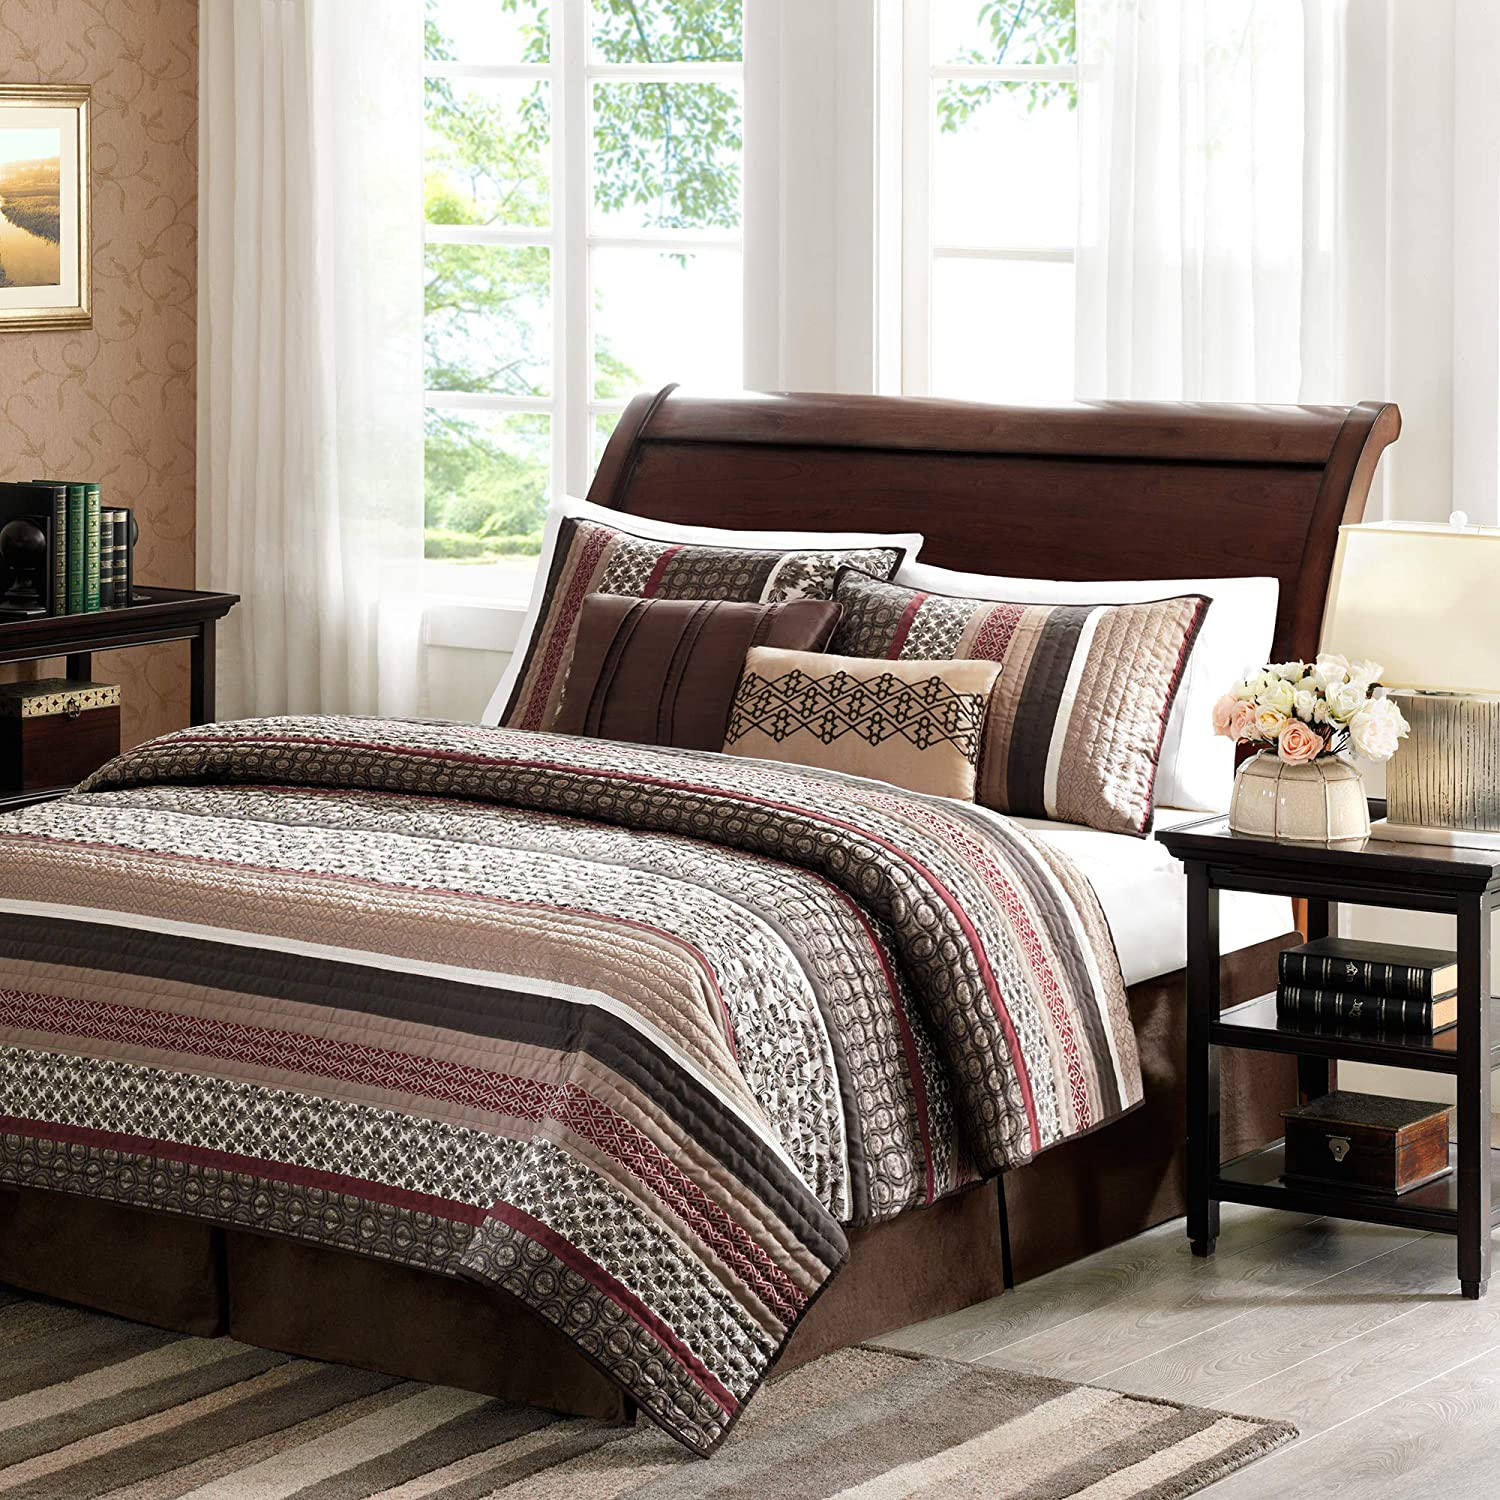 Madison Park Princeton King Size Quilt Bedding Set - Crimson Red, Jacquard Patterned Striped – 5 Piece Bedding Quilt Coverlets – Ultra Soft Microfiber Bed Quilts Quilted Coverlet